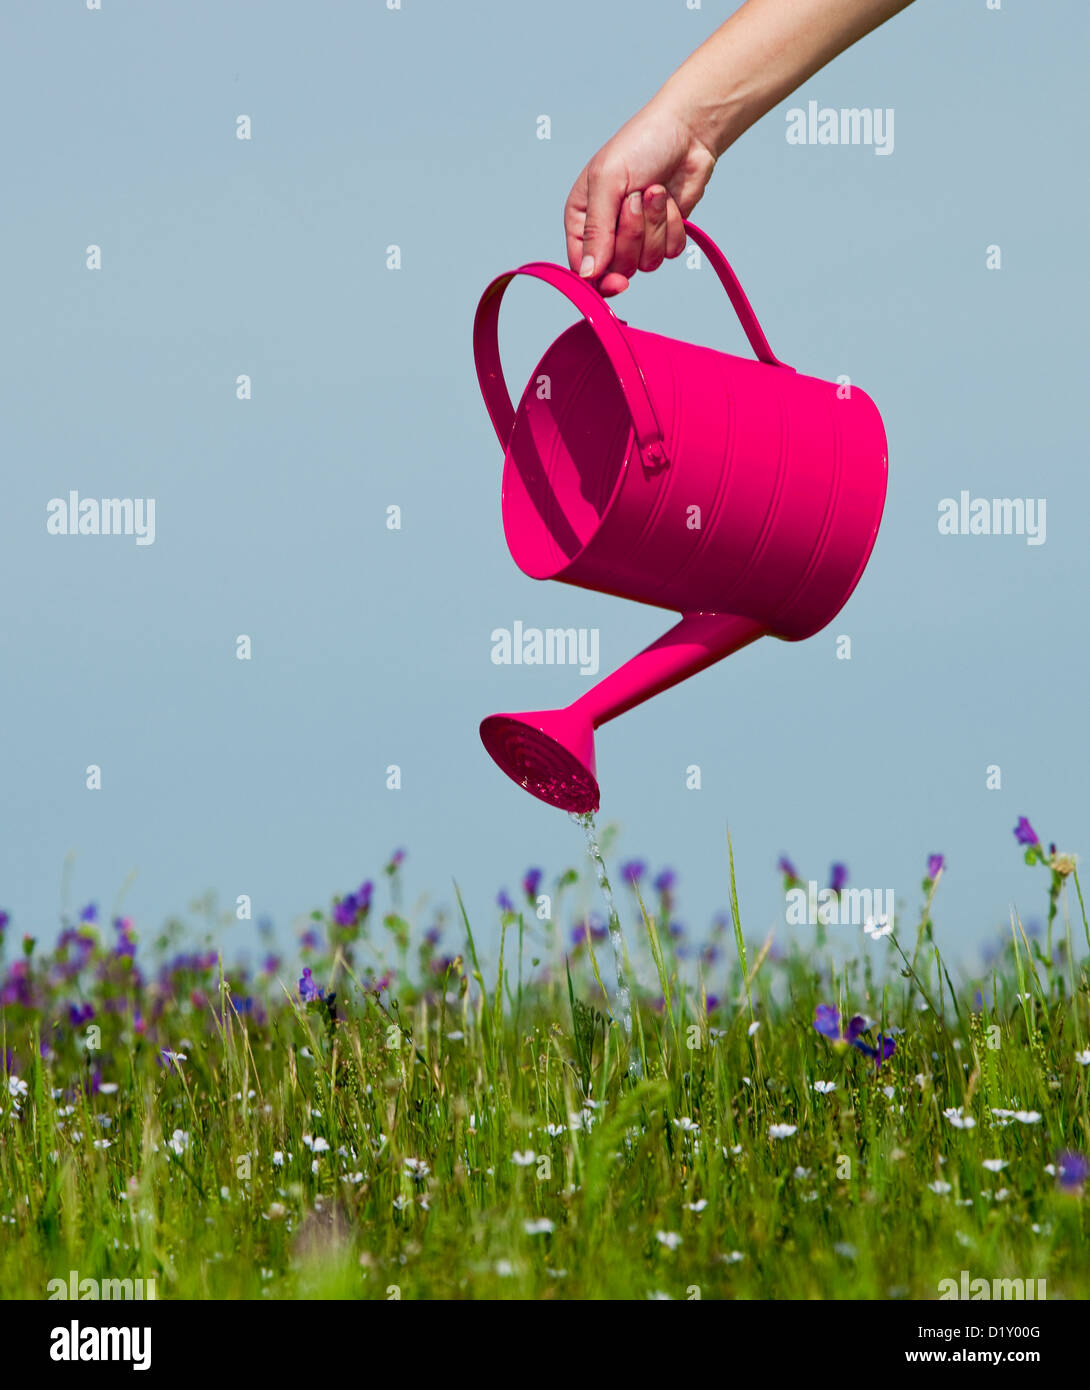 Female hand holding a water can and watering the flowers - Stock Image